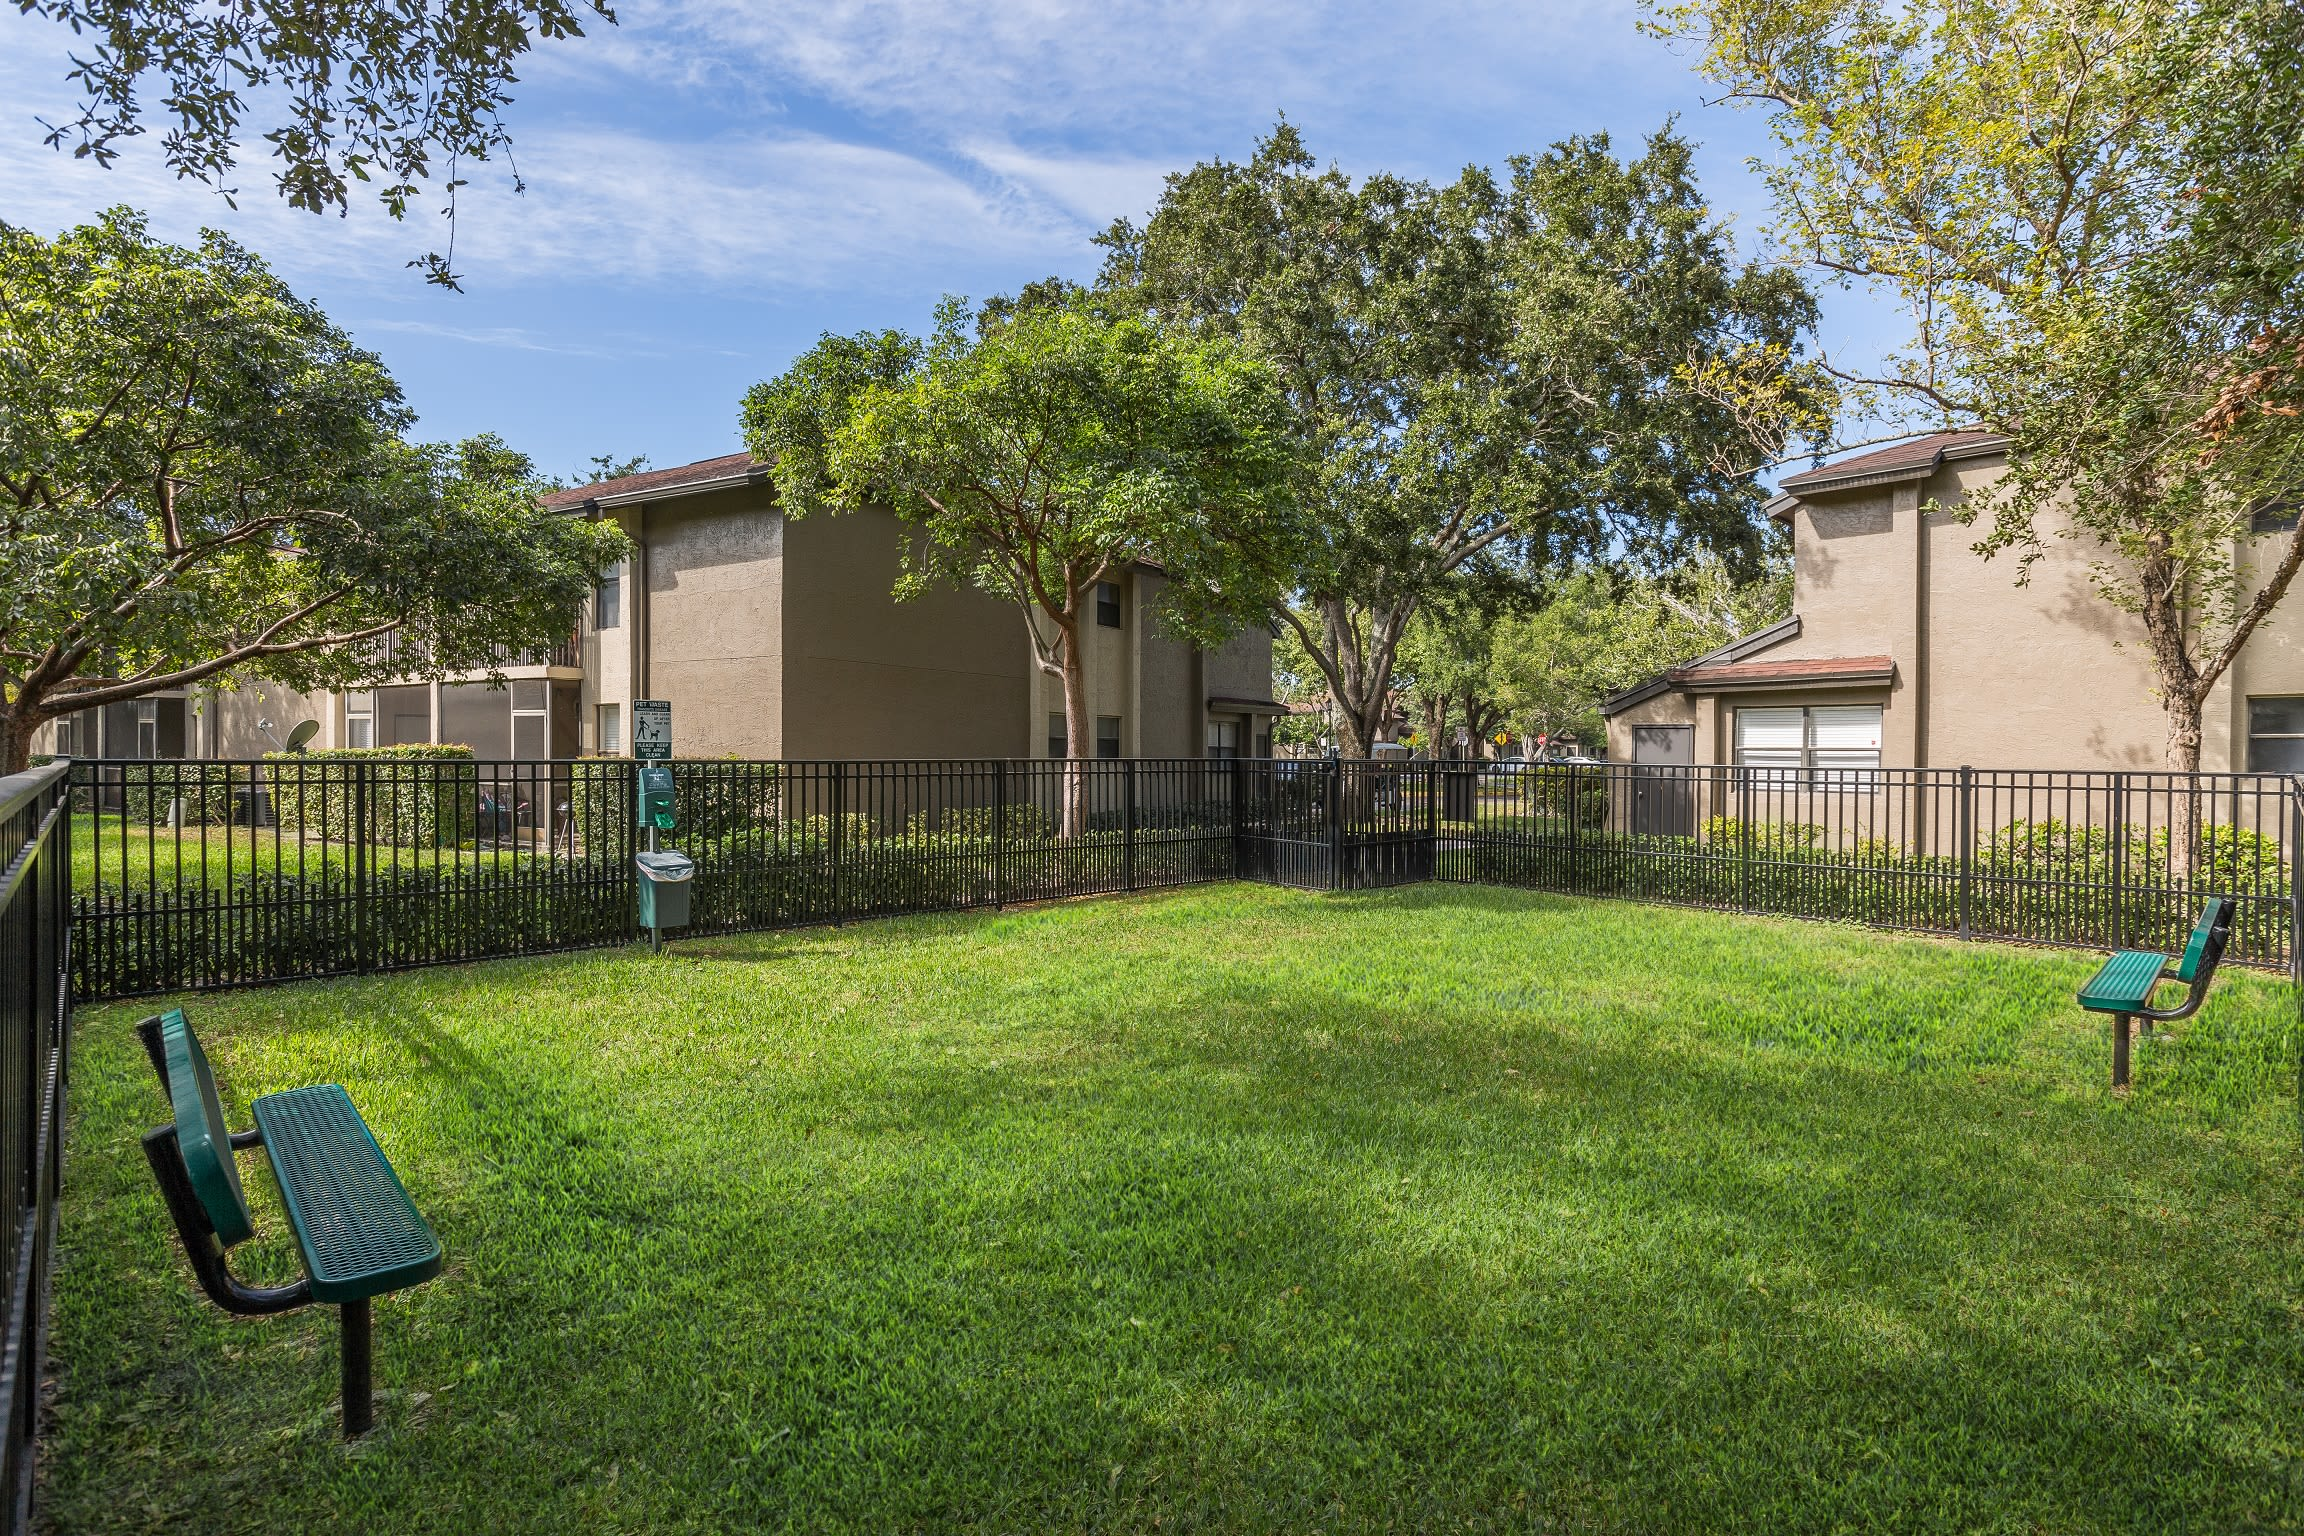 Very well-maintained green spaces at Siena Apartments in Plantation, Florida